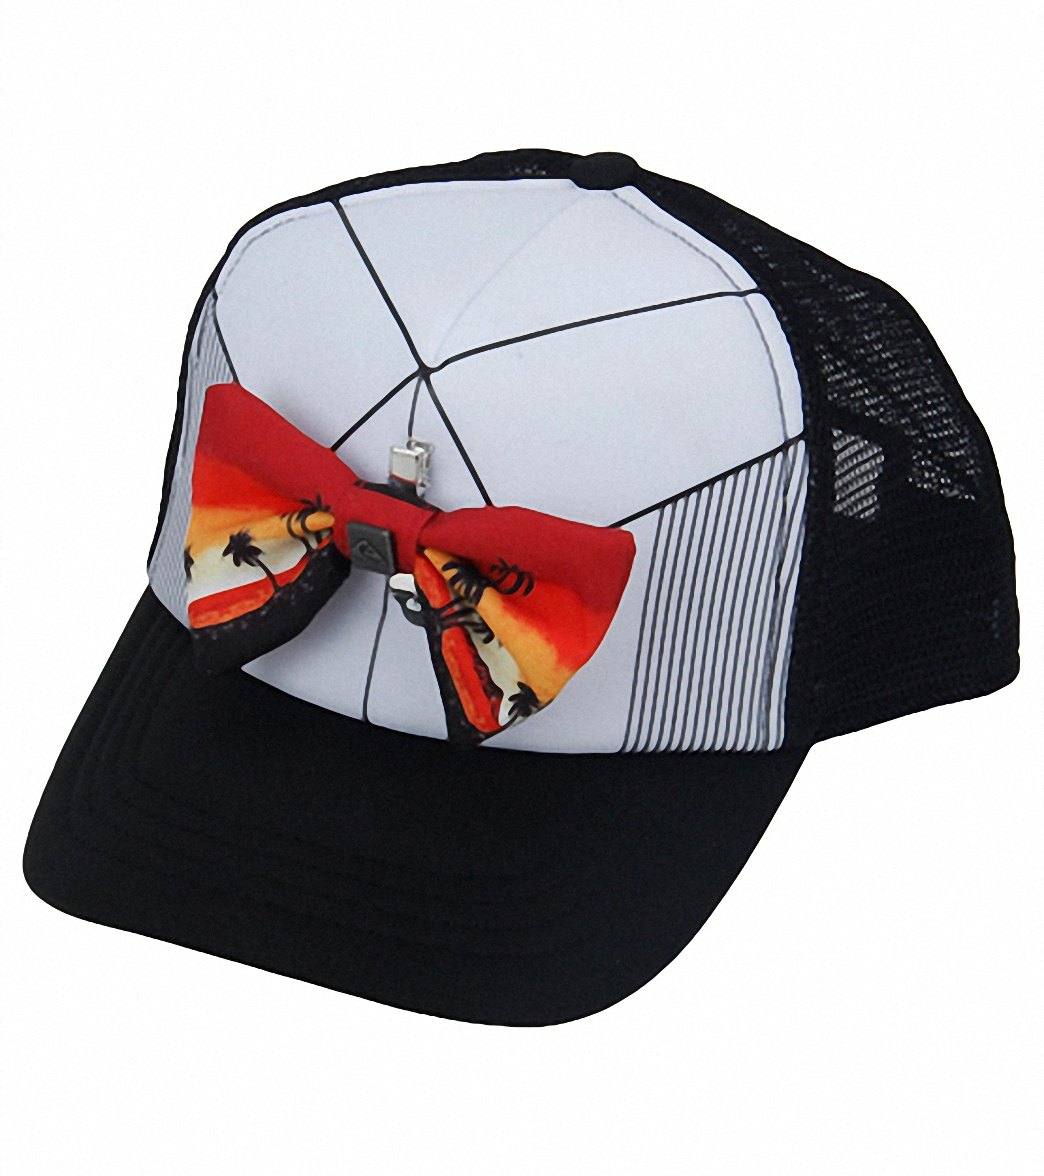 Quiksilver Boys  Diggler Bow Tie Trucker Hat (Kids) at SwimOutlet.com 68cce60974dd